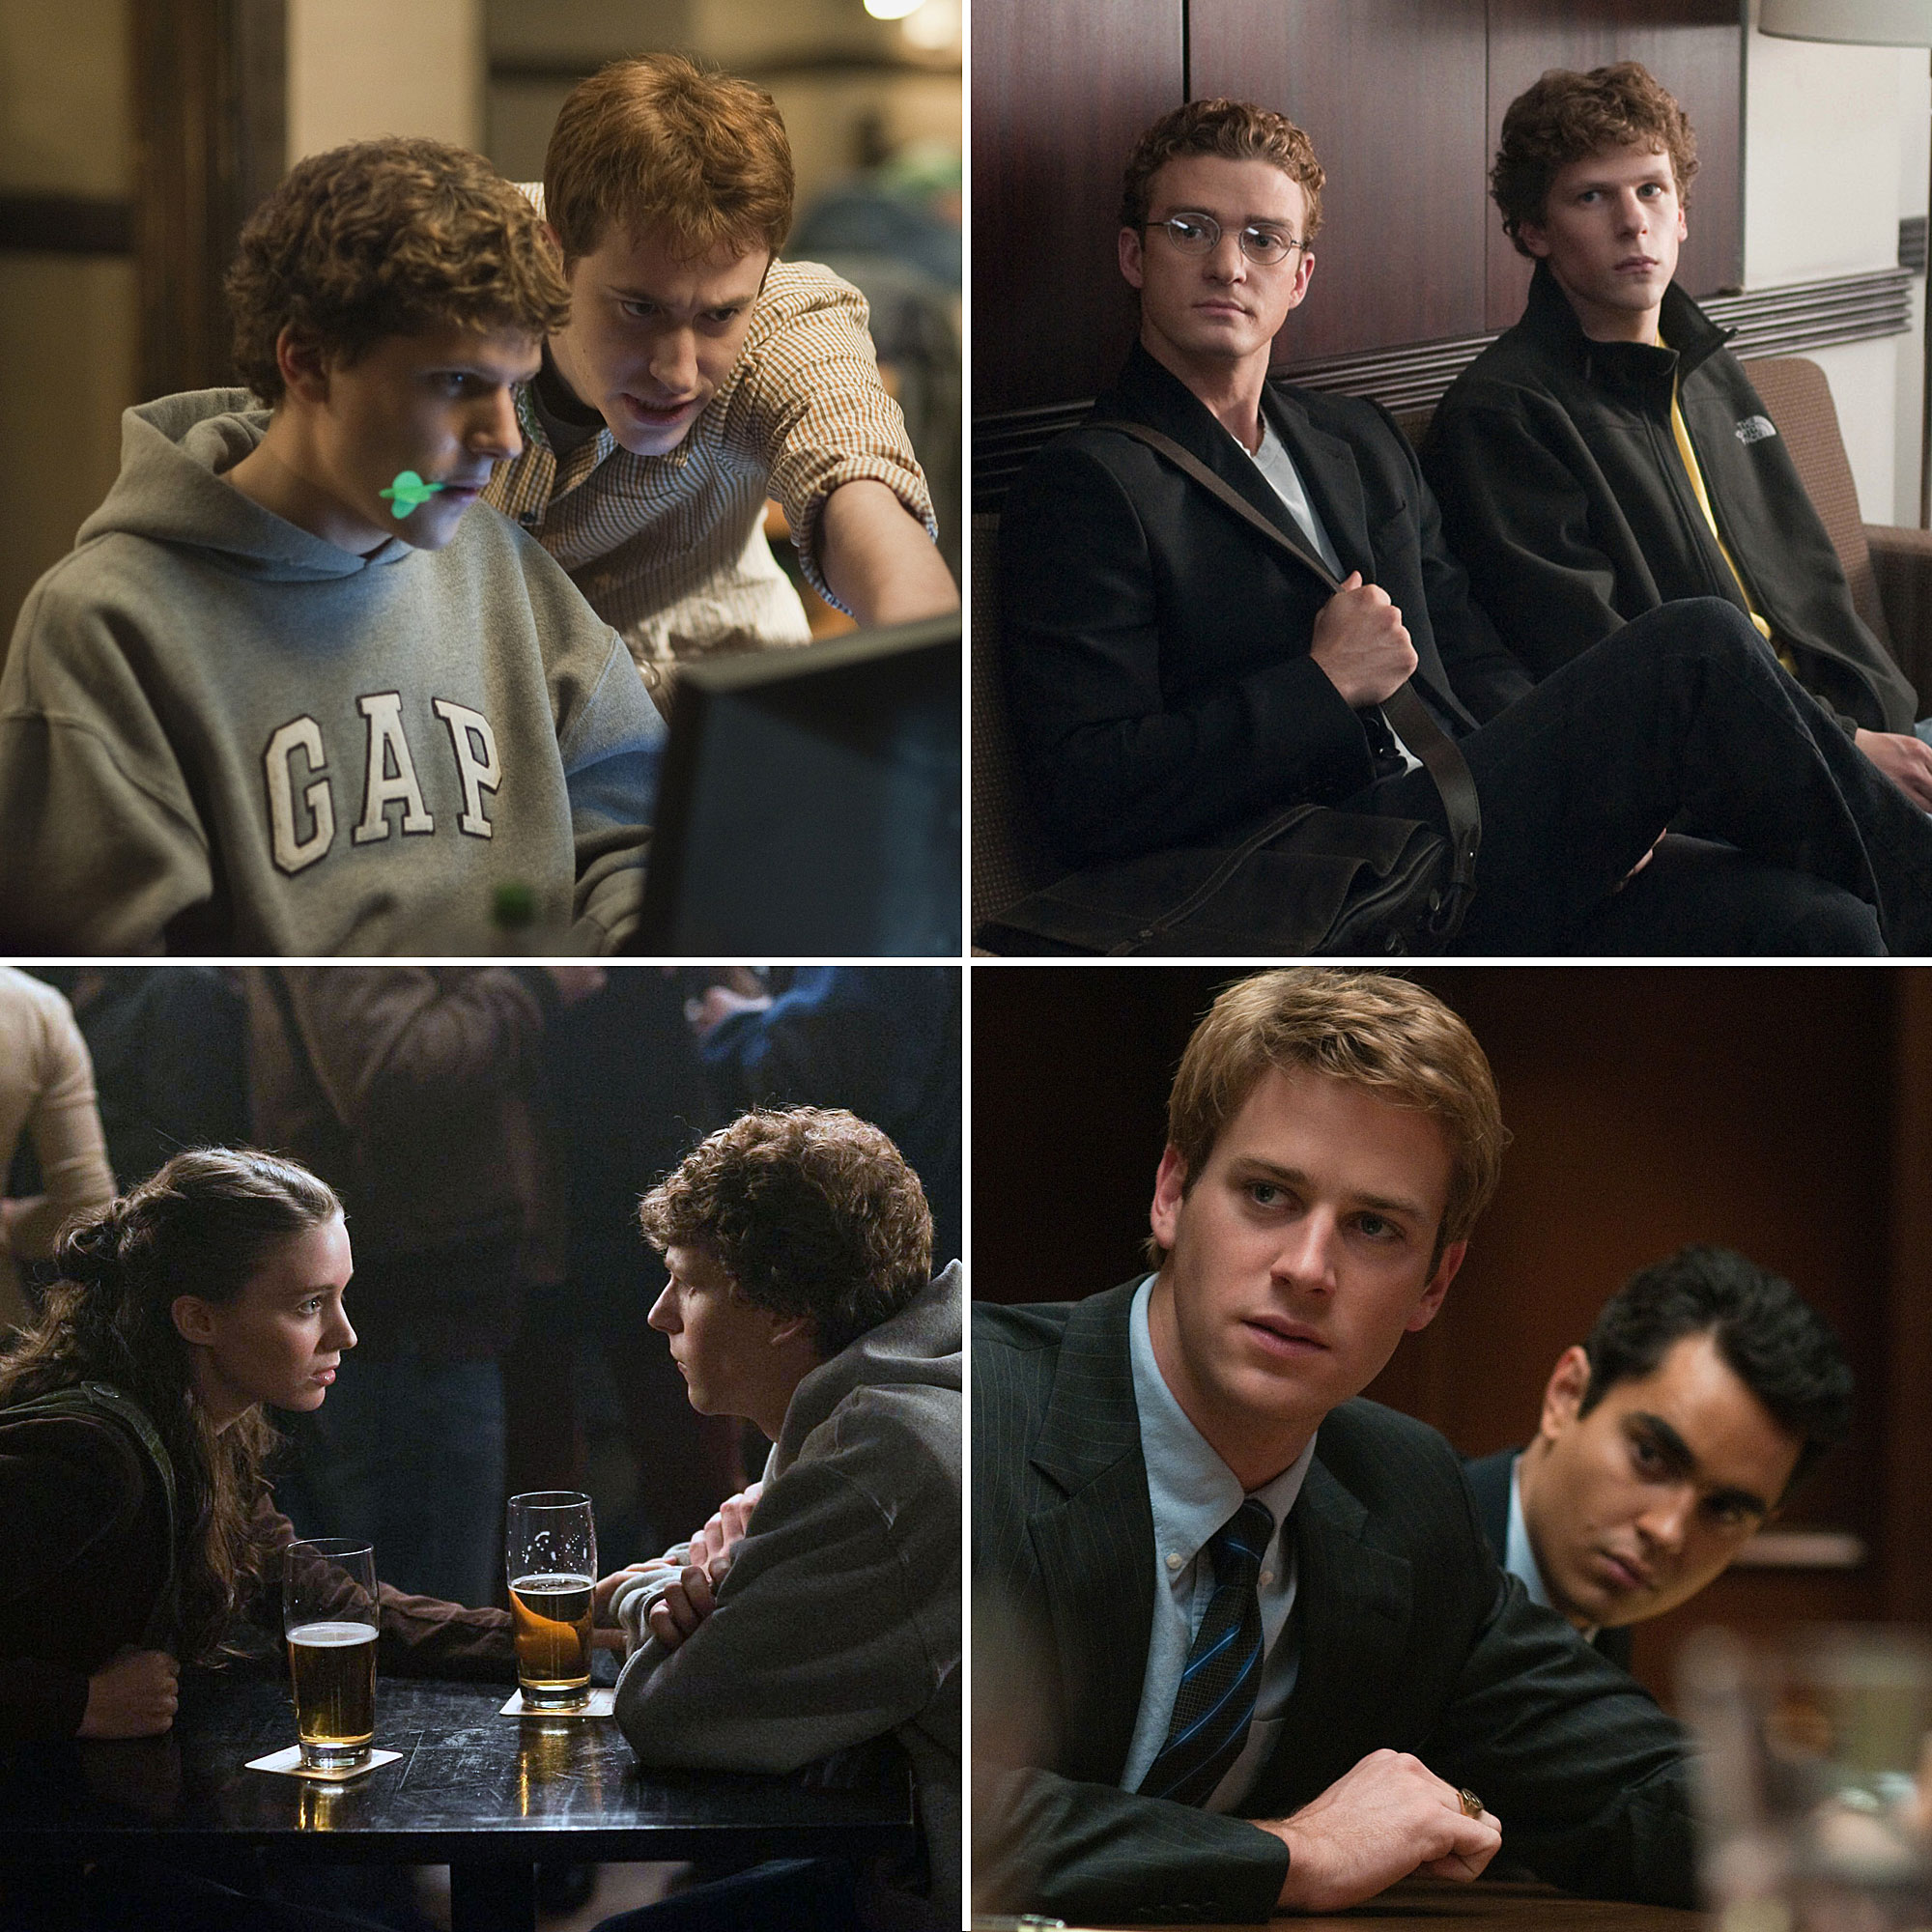 The Social Network' Cast: Where Are They Now?